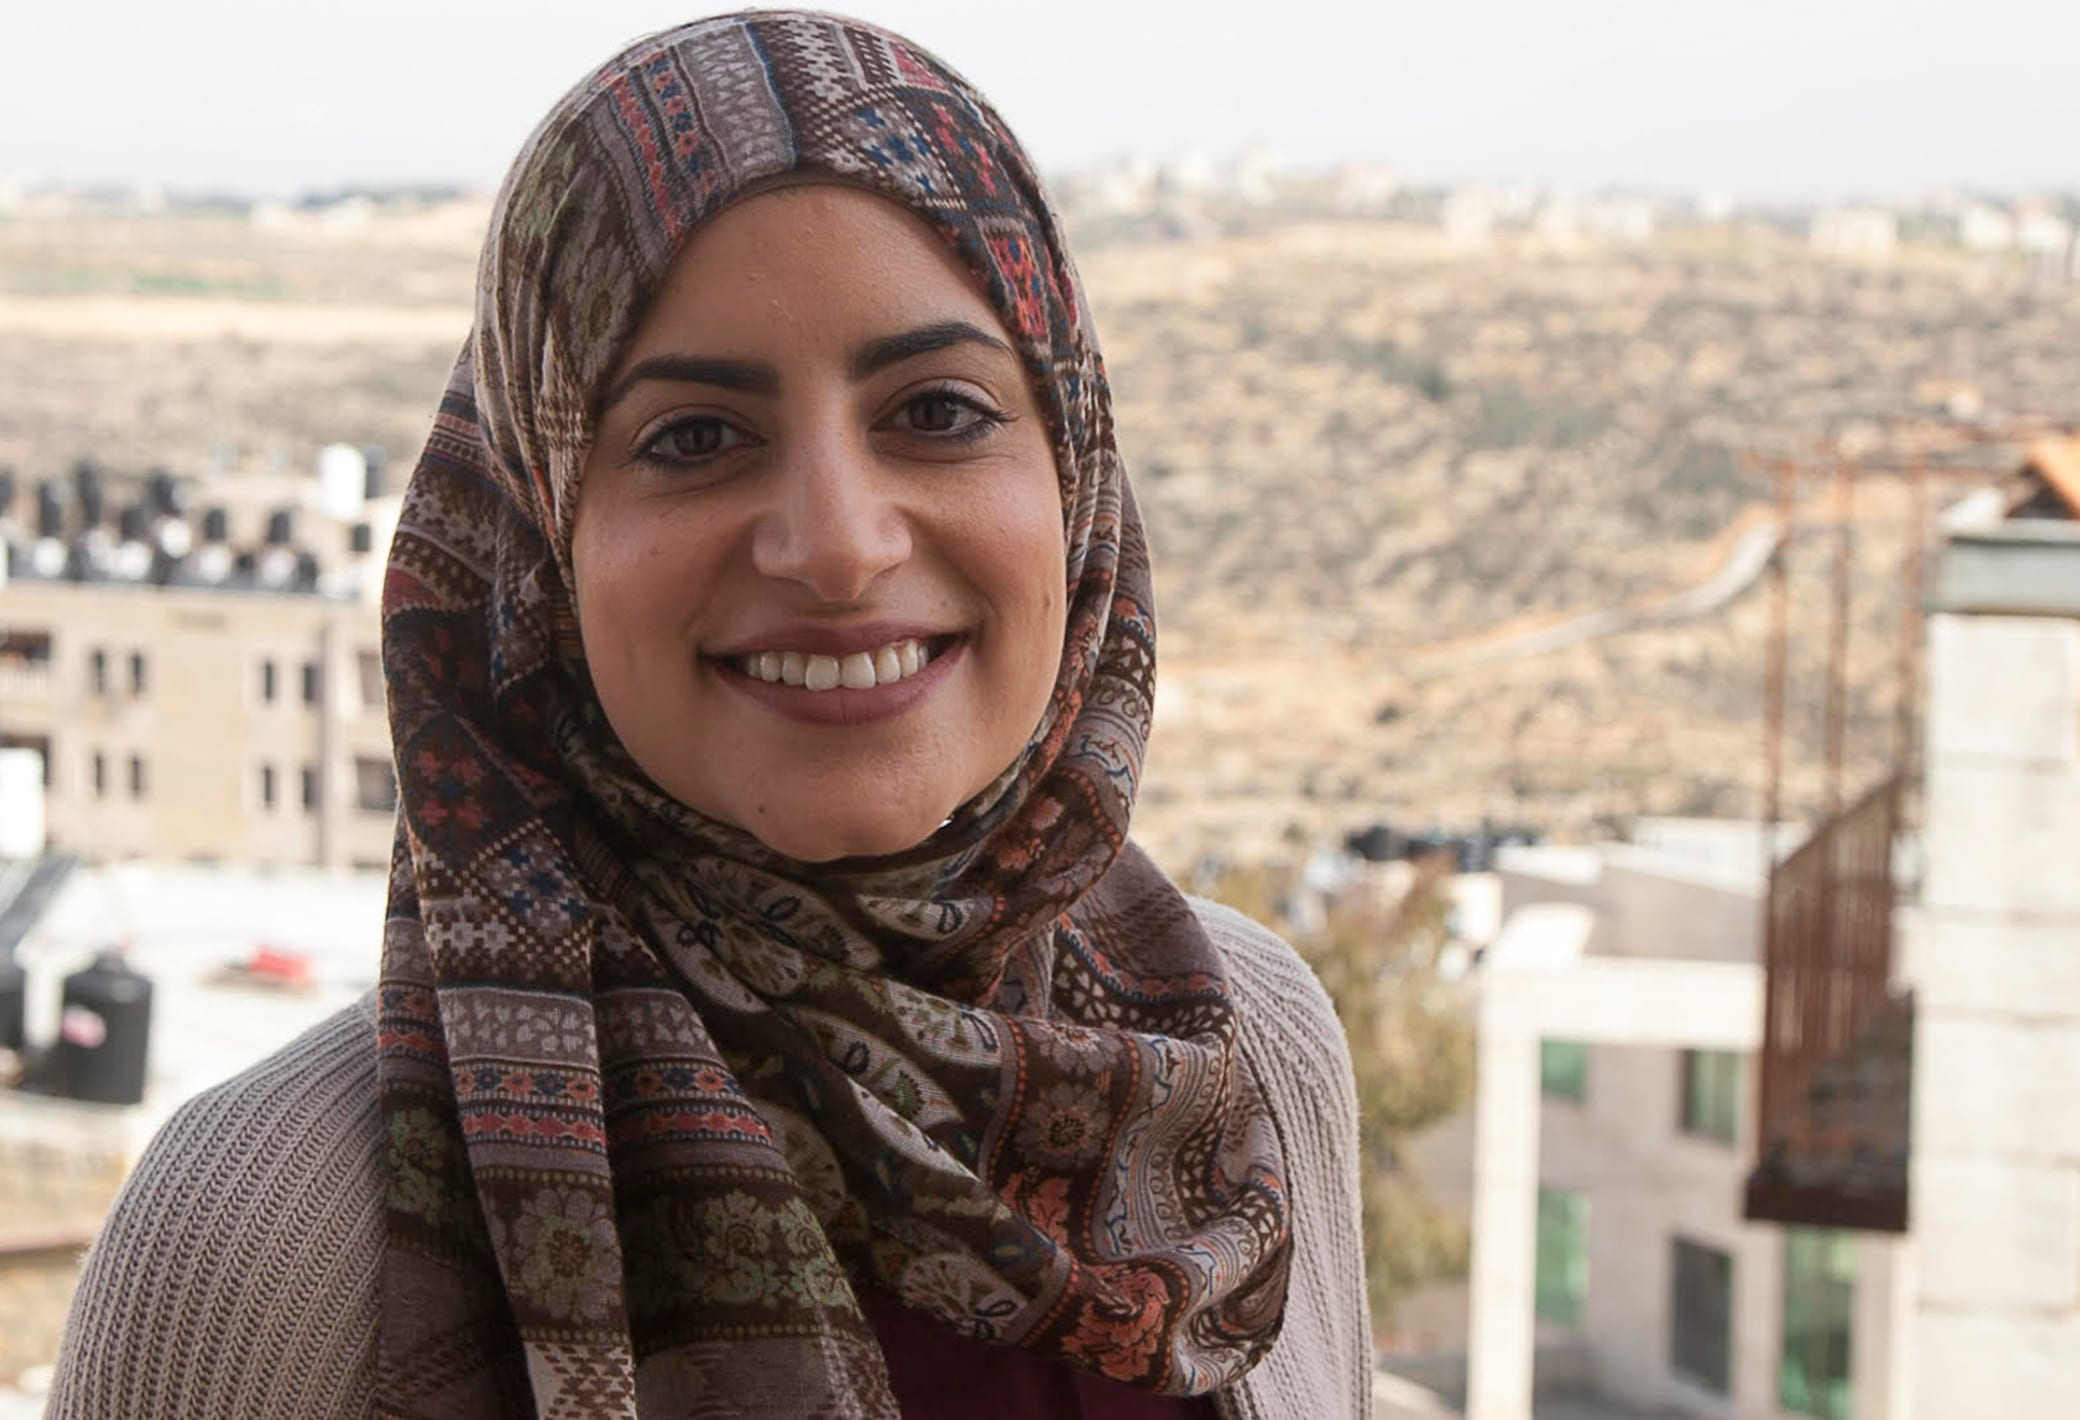 """I received great knowledge, says Sahar Soufan, Program Officer at The Danish House in Palestine after the course """"A Human Rights Based Approach to Development Programming""""in 2017 I was happy to participate in """"A Human Rights Based Approach to Development Programming"""" training in Copenhagen in 2017. It was my first training course in such a topic. I must say that I have received great knowledge."""